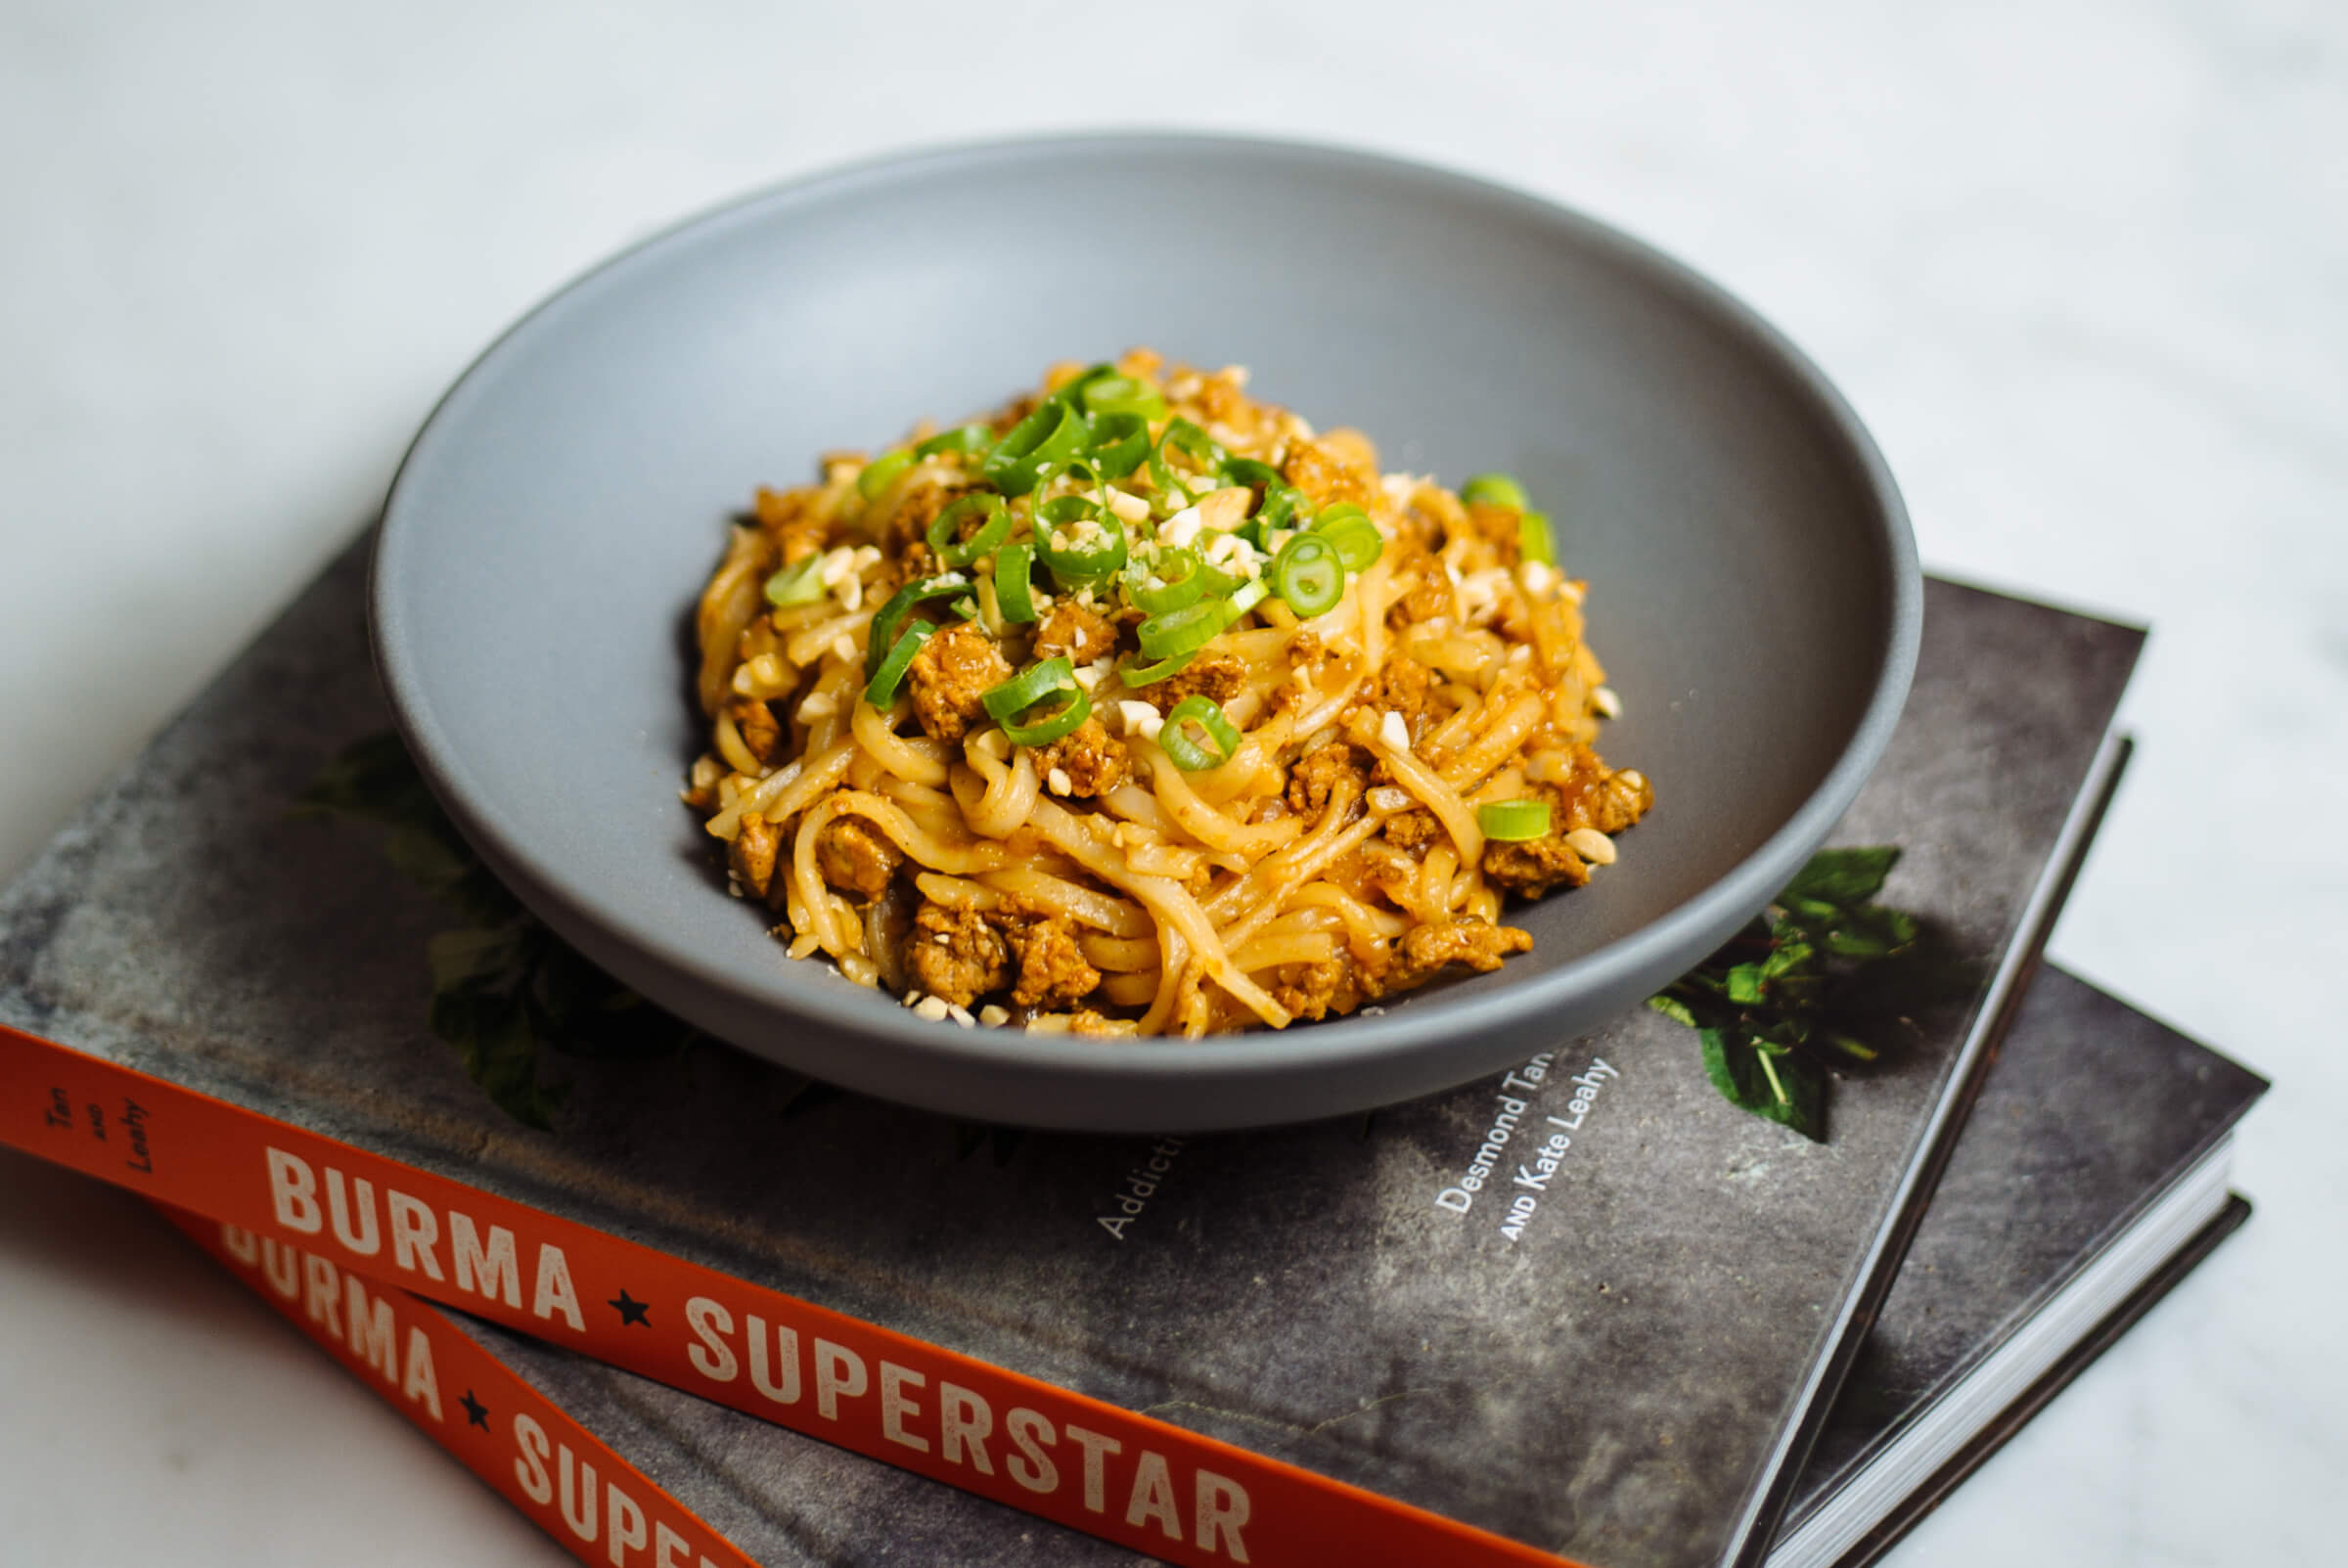 Burma Superstar Shan Noodles Recipe by Desmond Tan and Kate Leahy with five spice powder and chicken